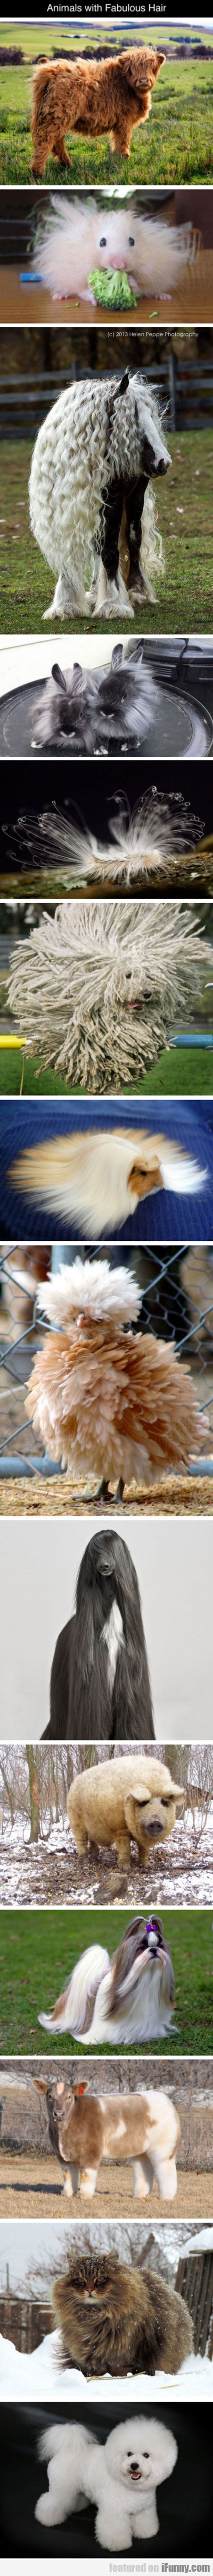 Animals with fabulous hair